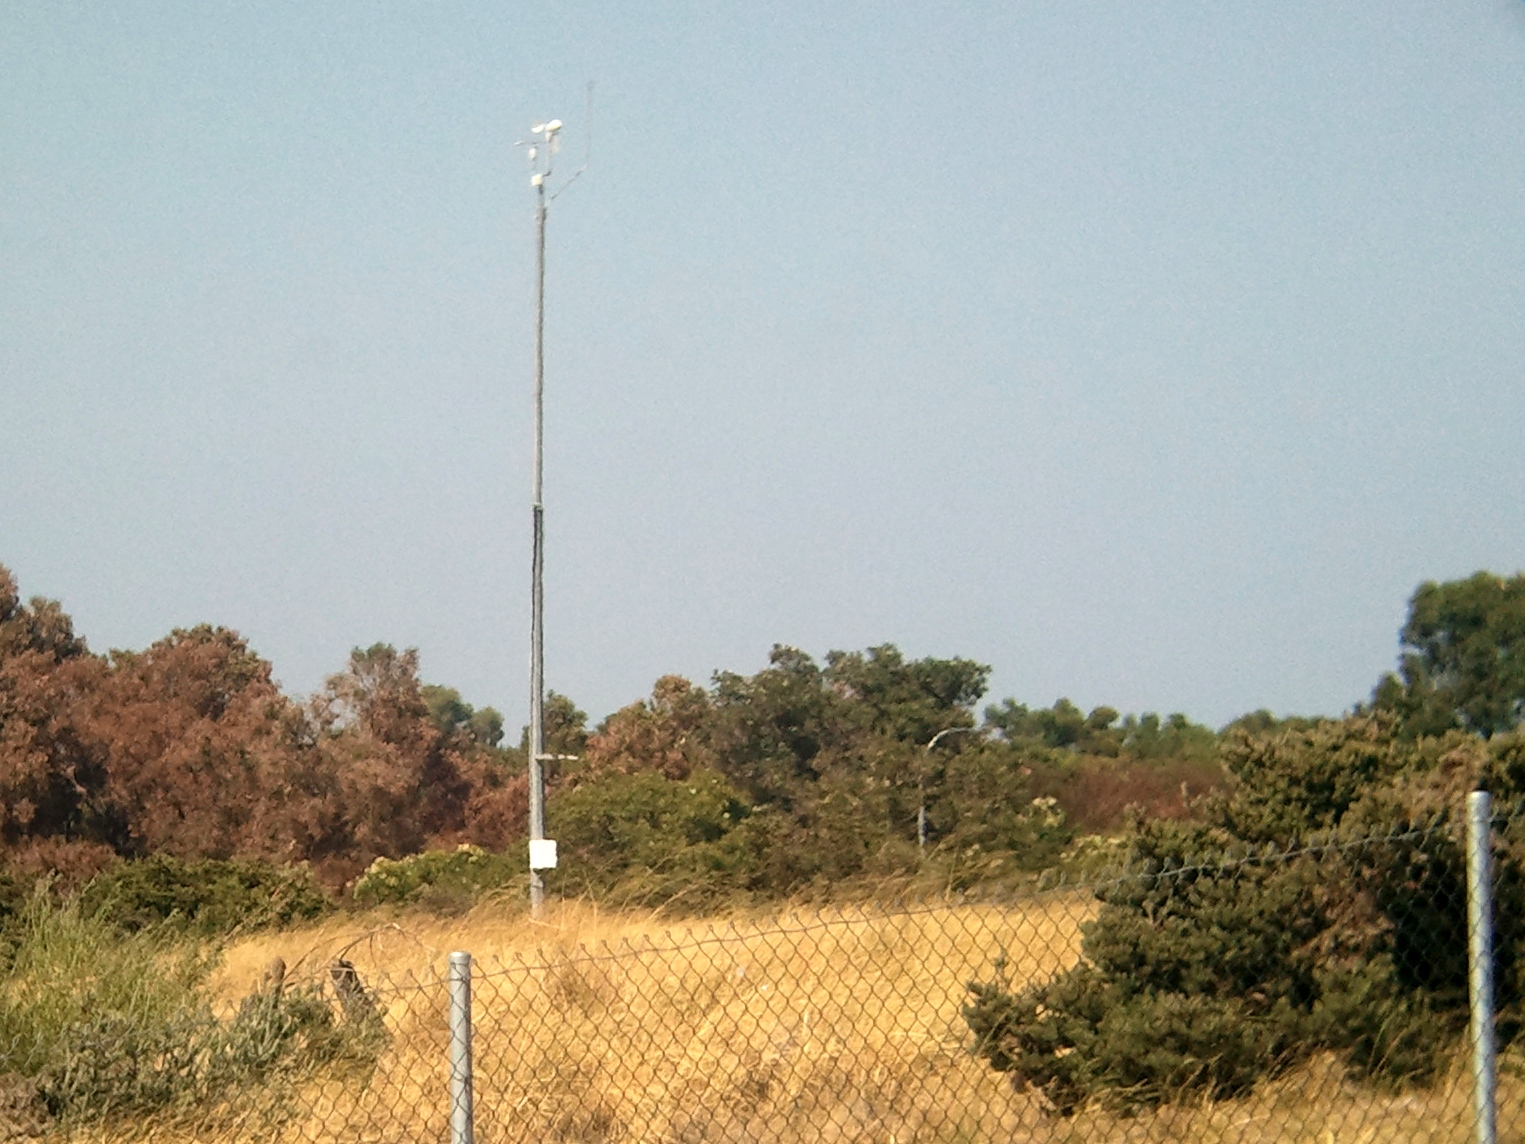 TheWAWG Forum - View topic - BOM Weather Stations (with pics)